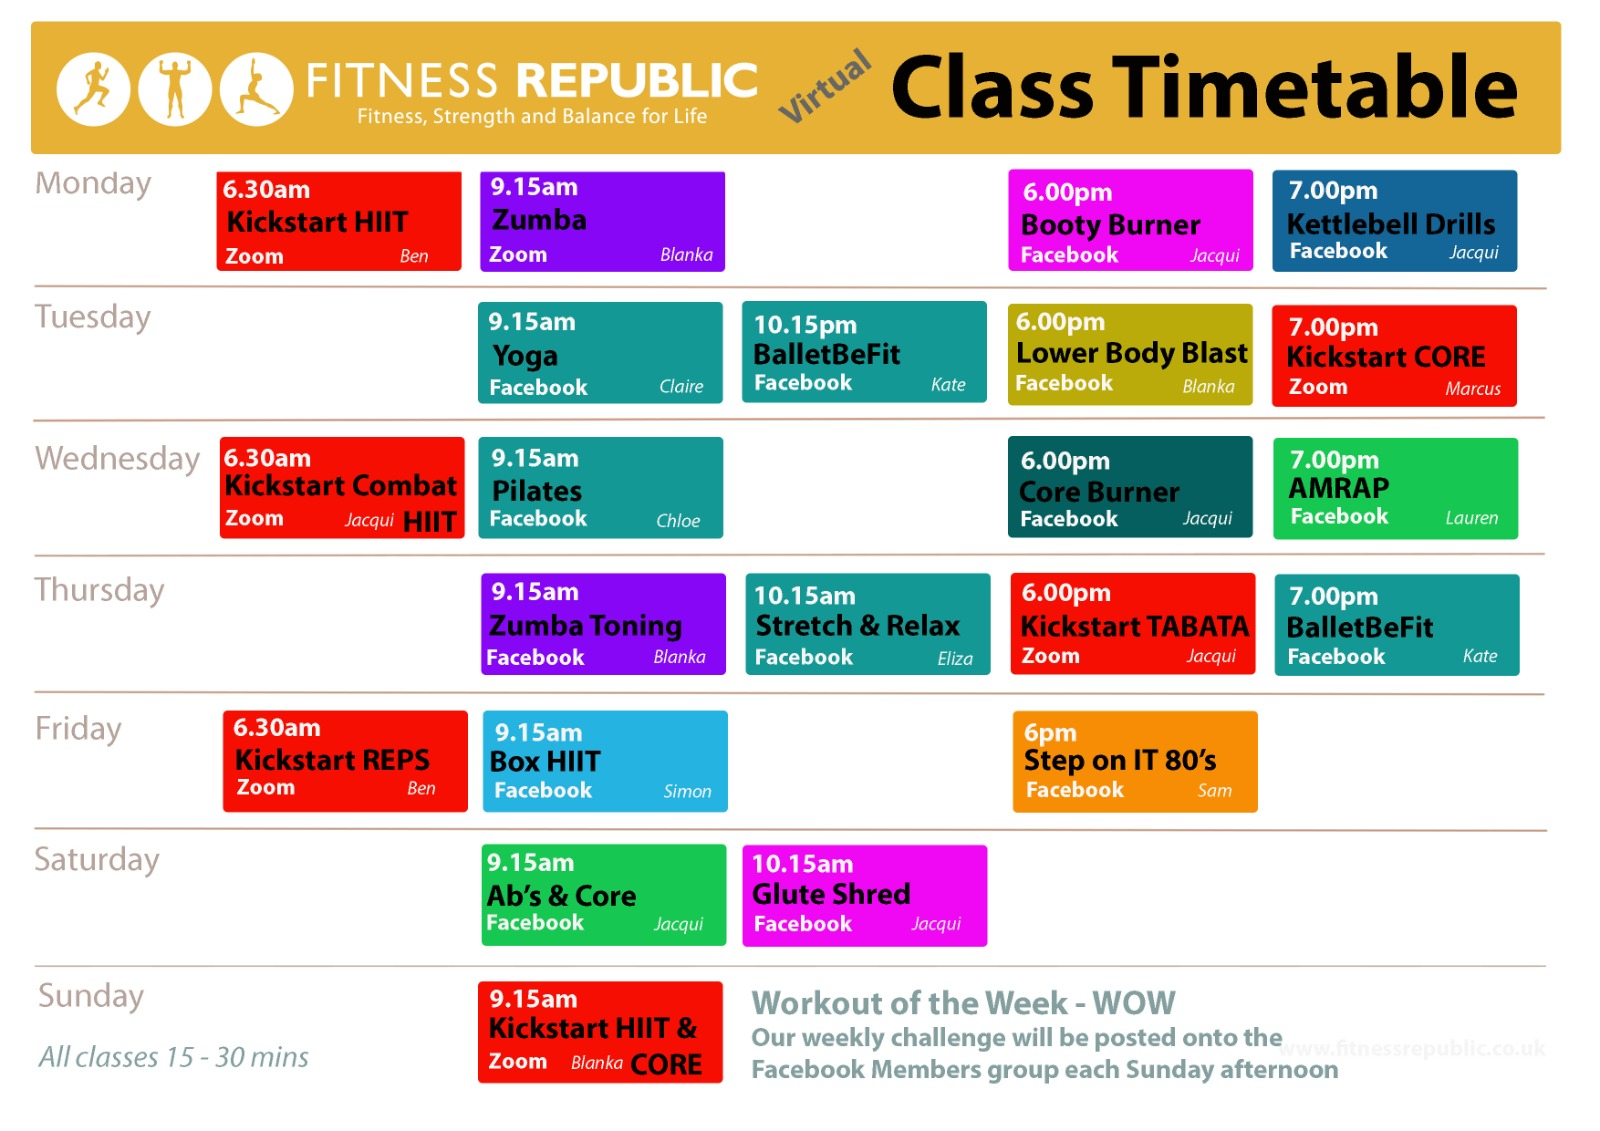 Our current class timetable